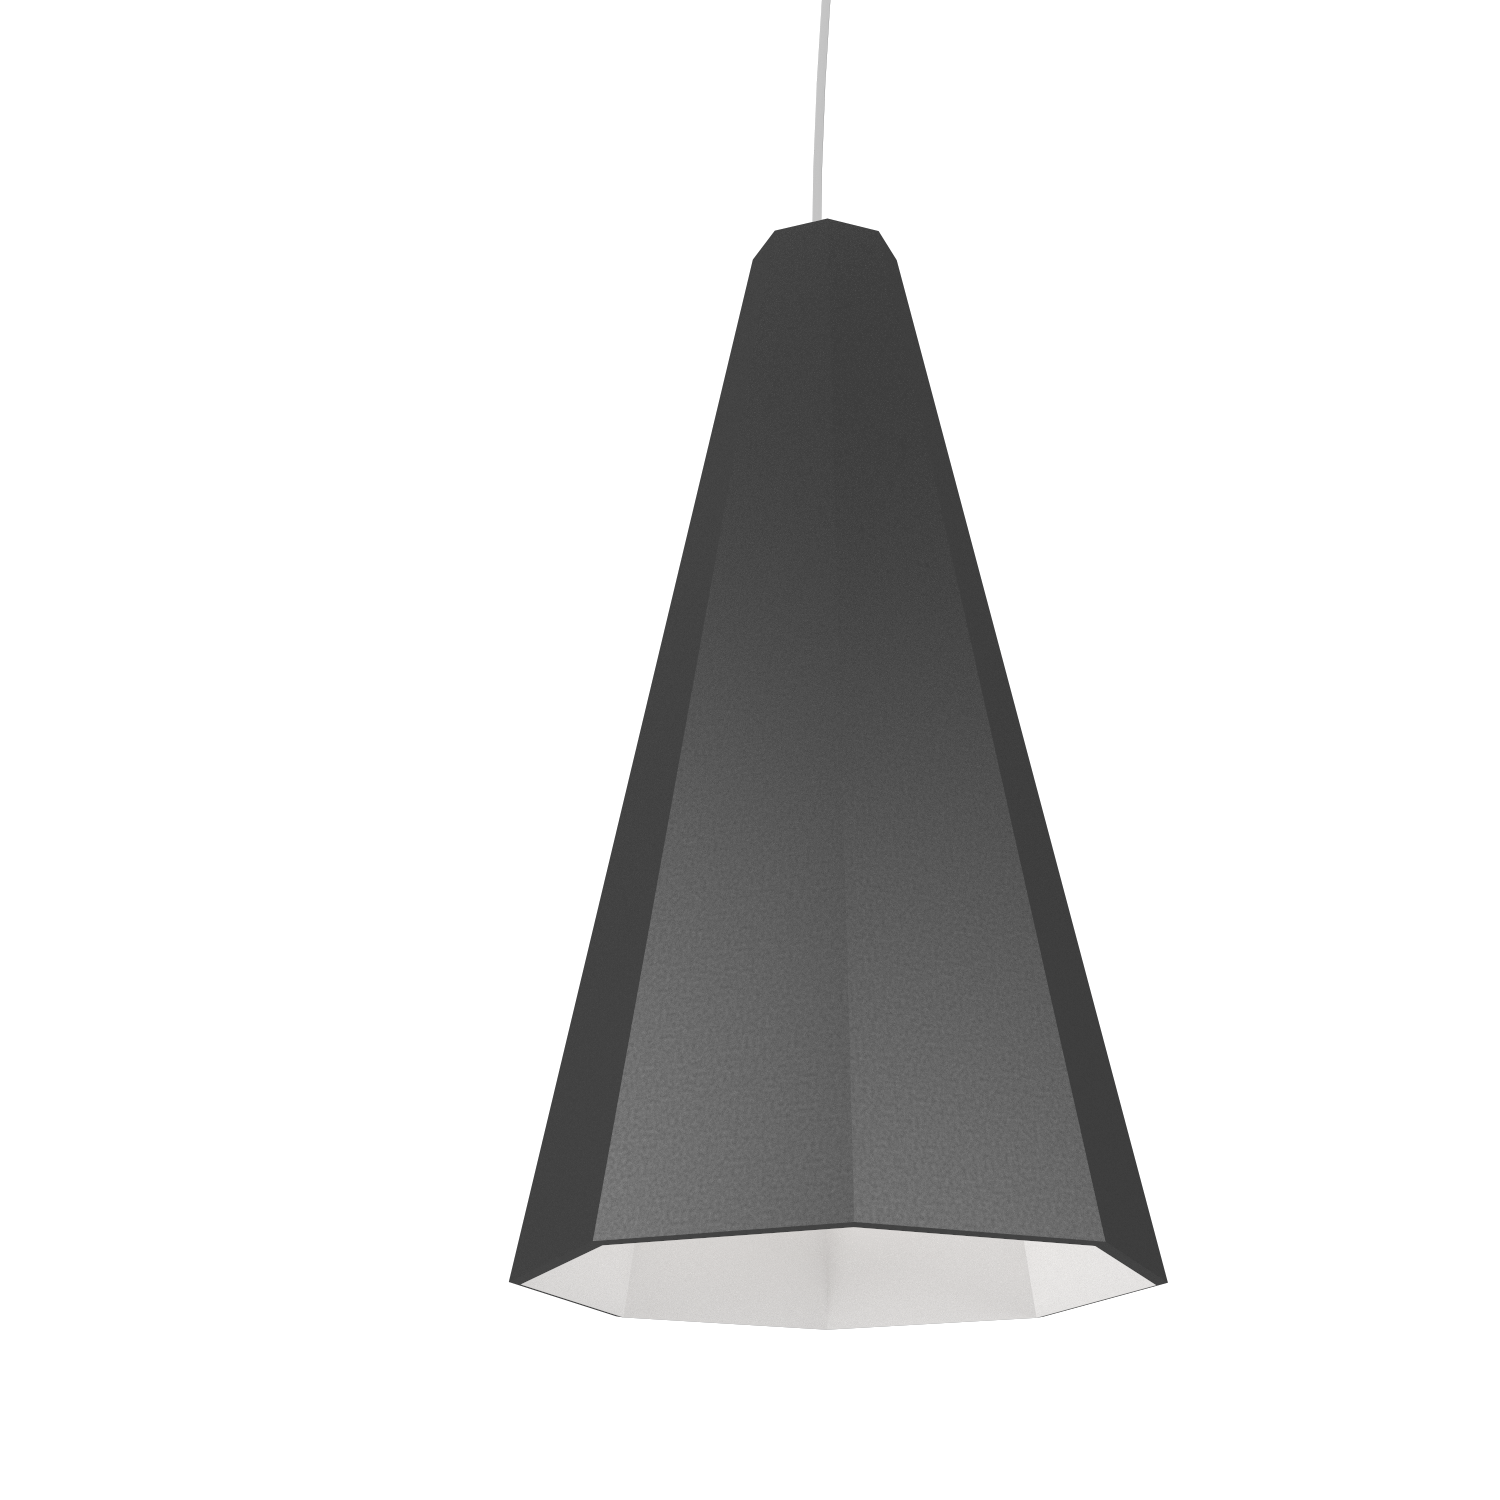 Pendant Lamp Accord Facetado 1231 - Facetada Line Accord Lighting | Lead Grey